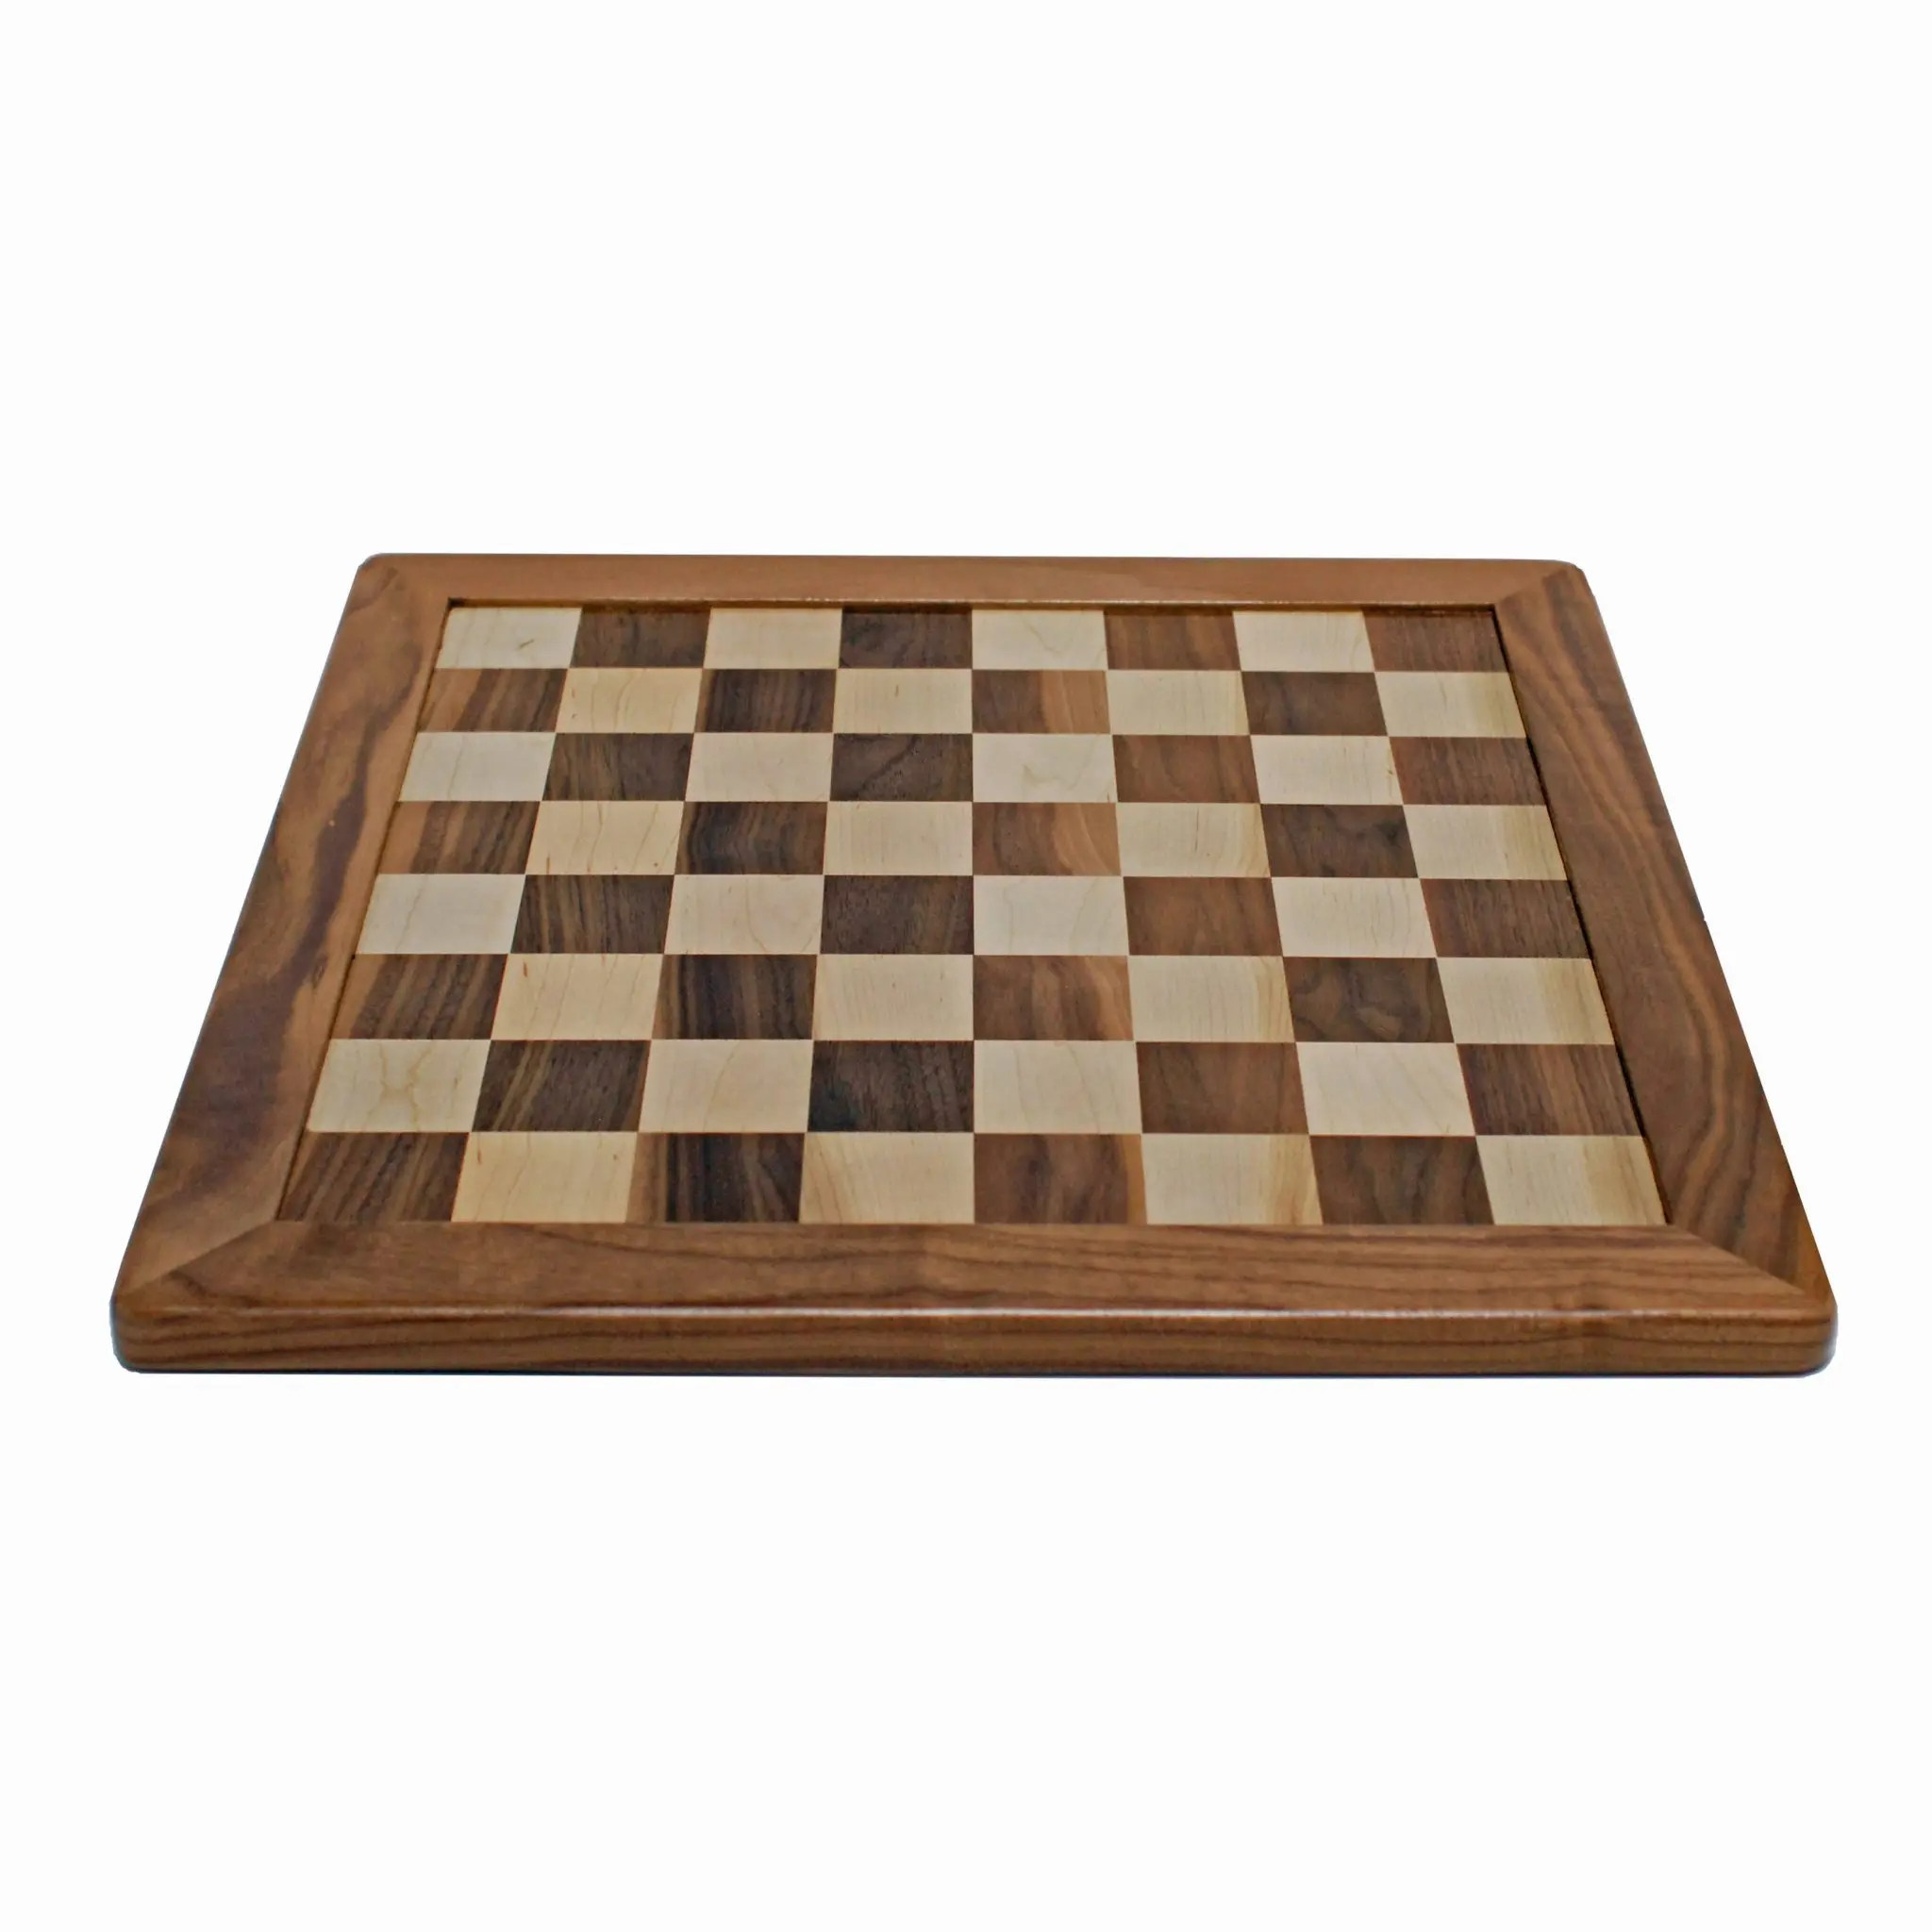 Chess Board Sale Classic Chess Board Solid Walnut And Maple Wood 18 In